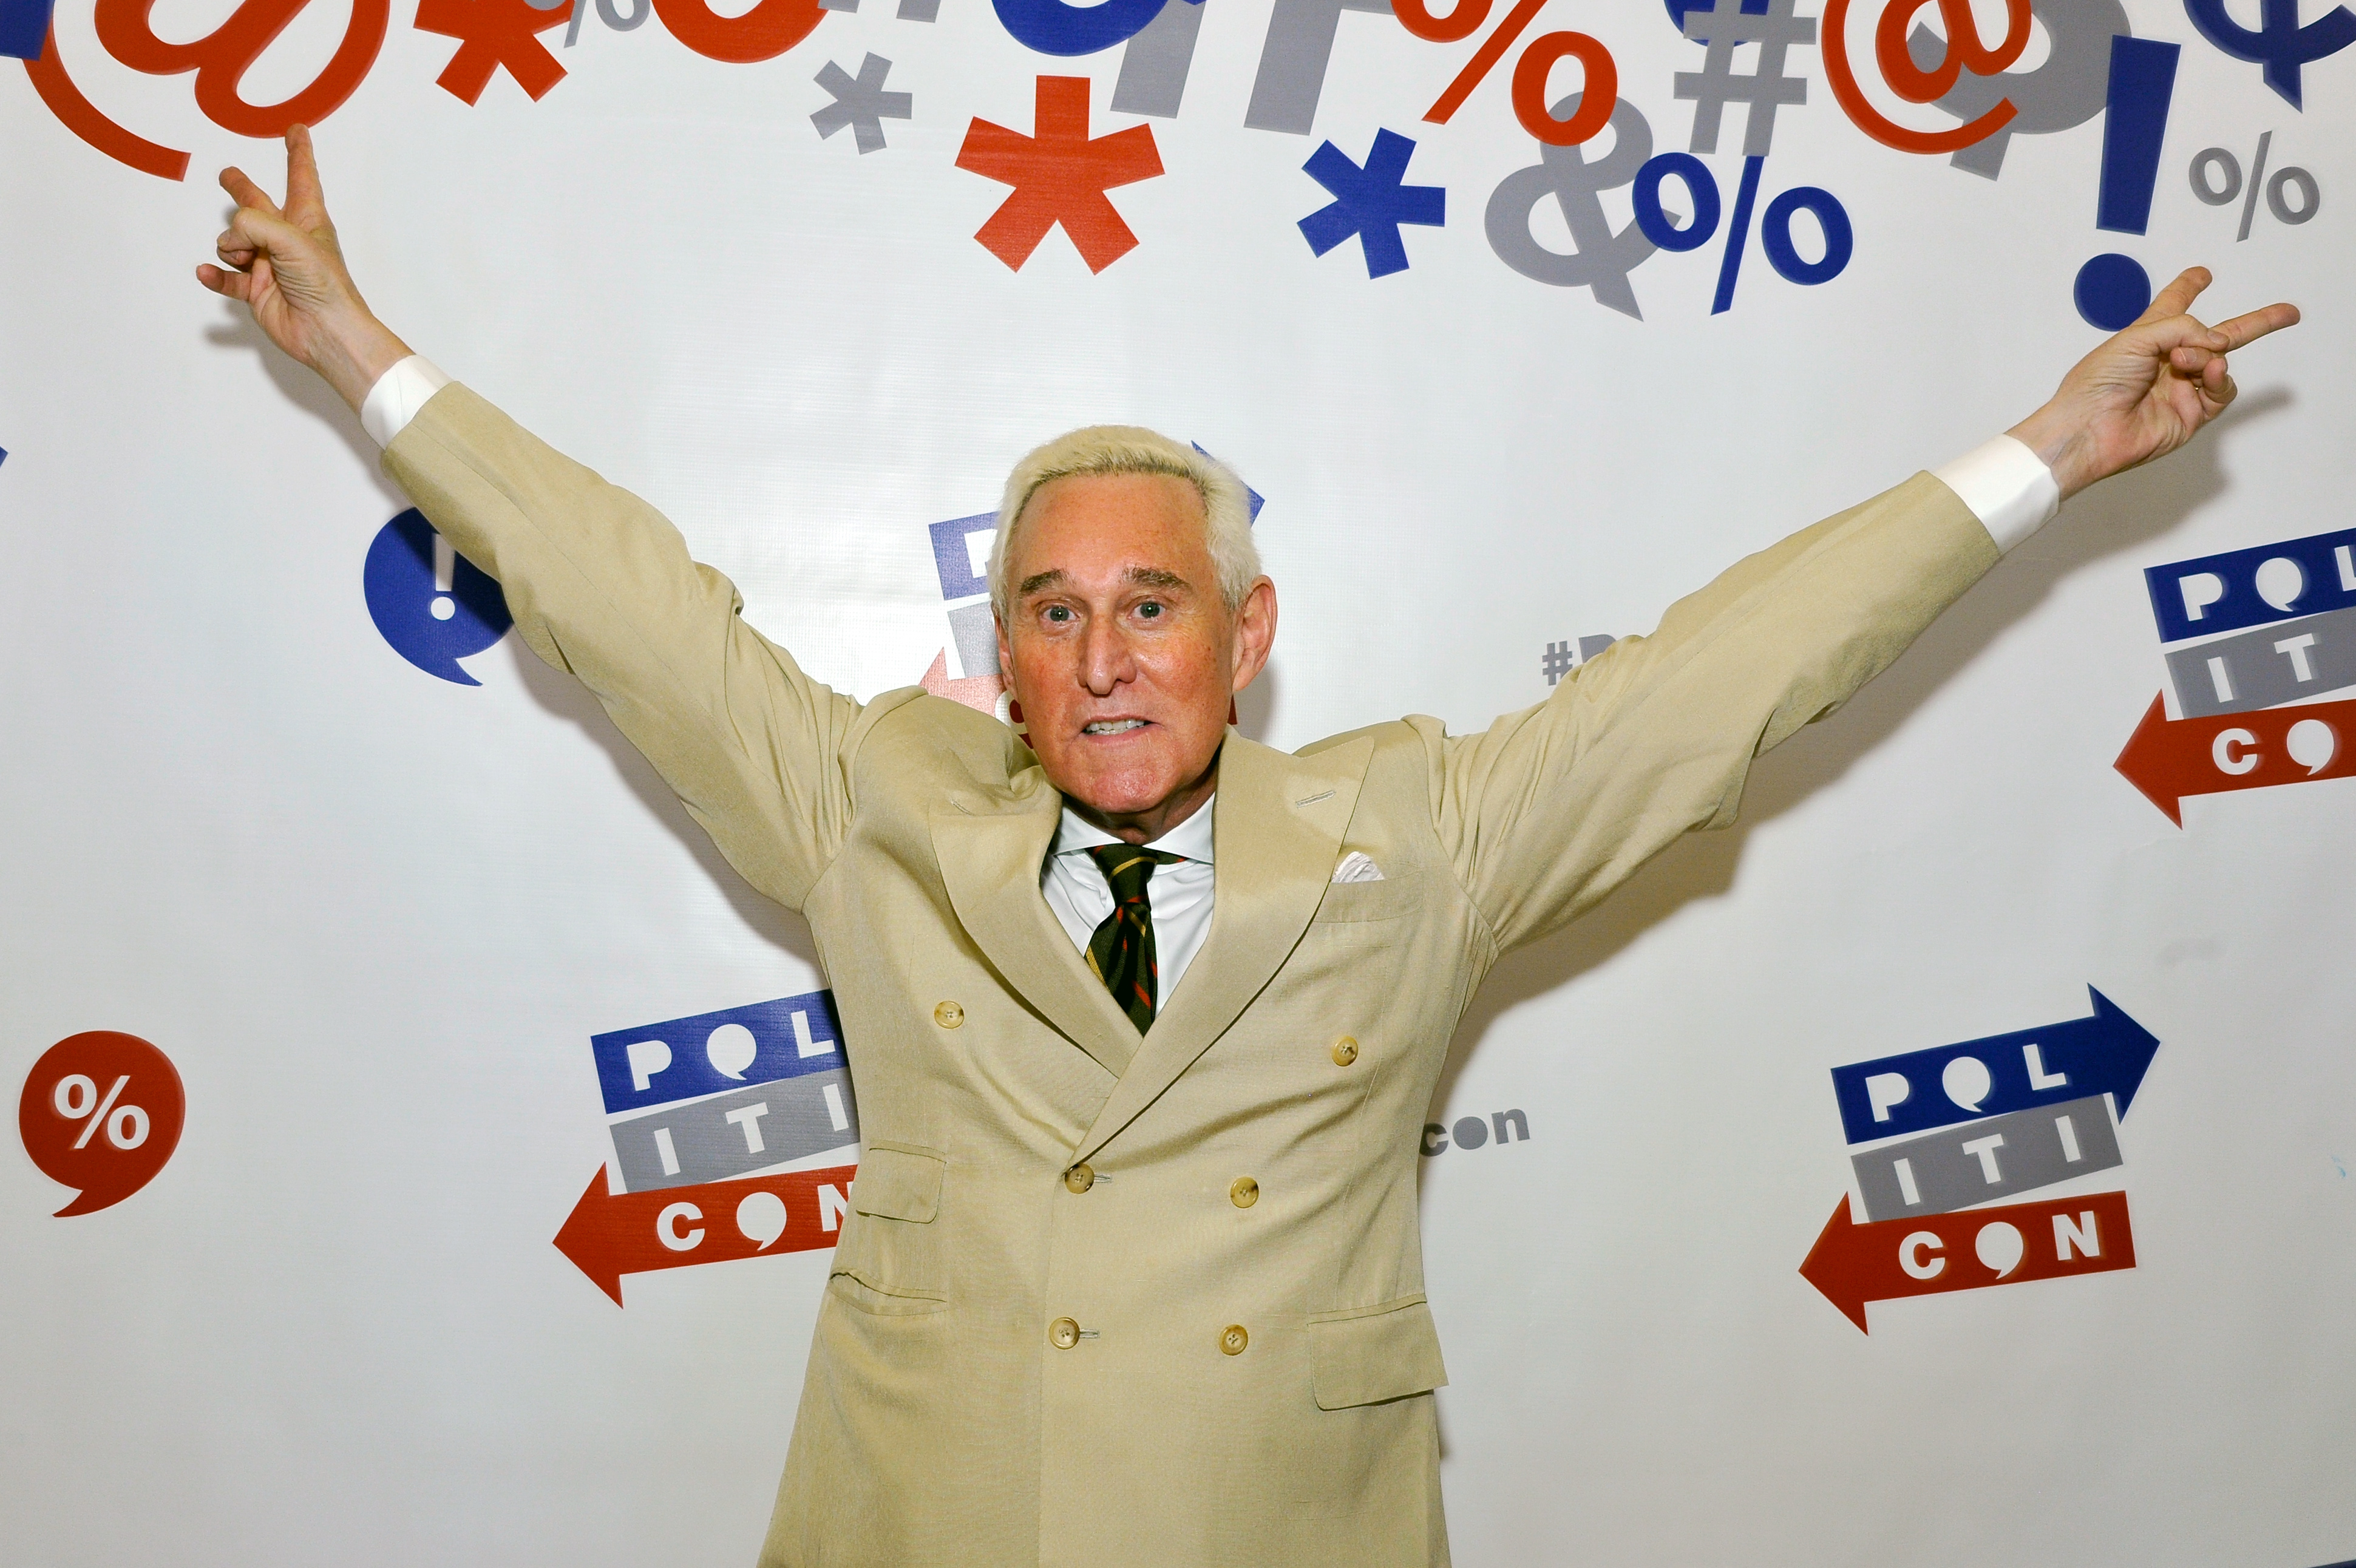 Roger Stone acknowledges he might be indicted